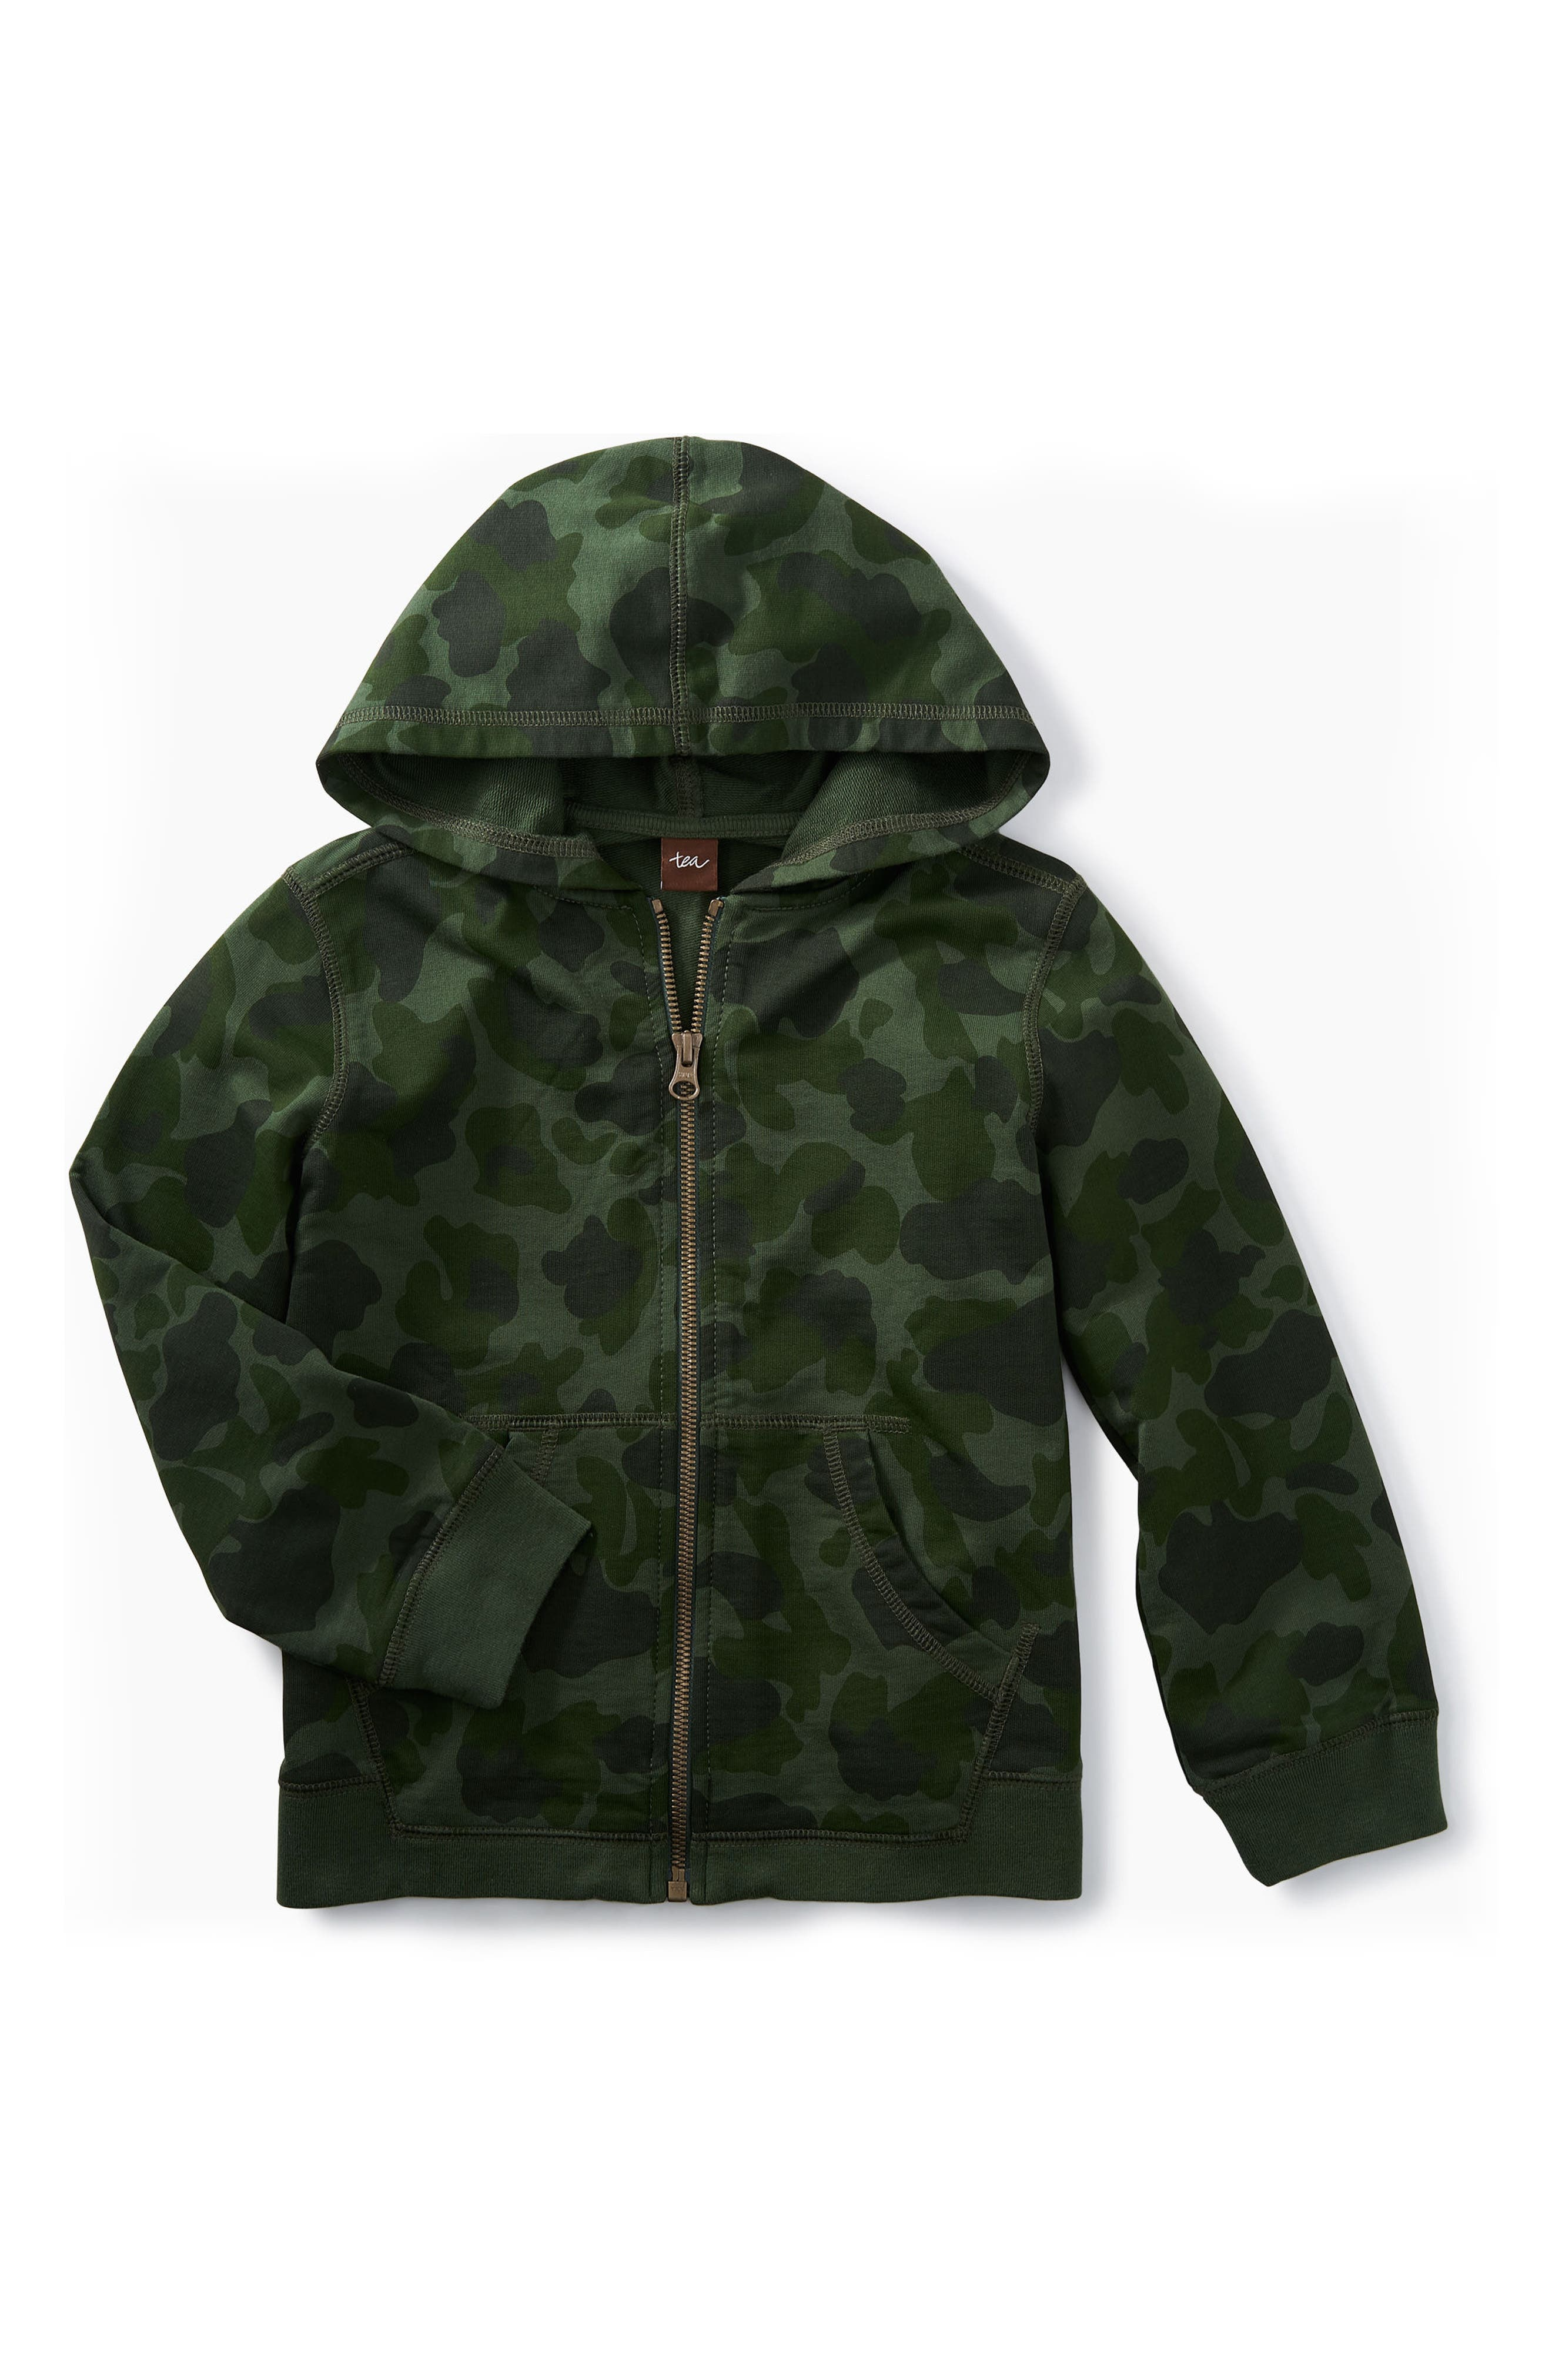 Alternate Image 1 Selected - Tea Collection Zip Hoodie (Toddler Boys & Little Boys)